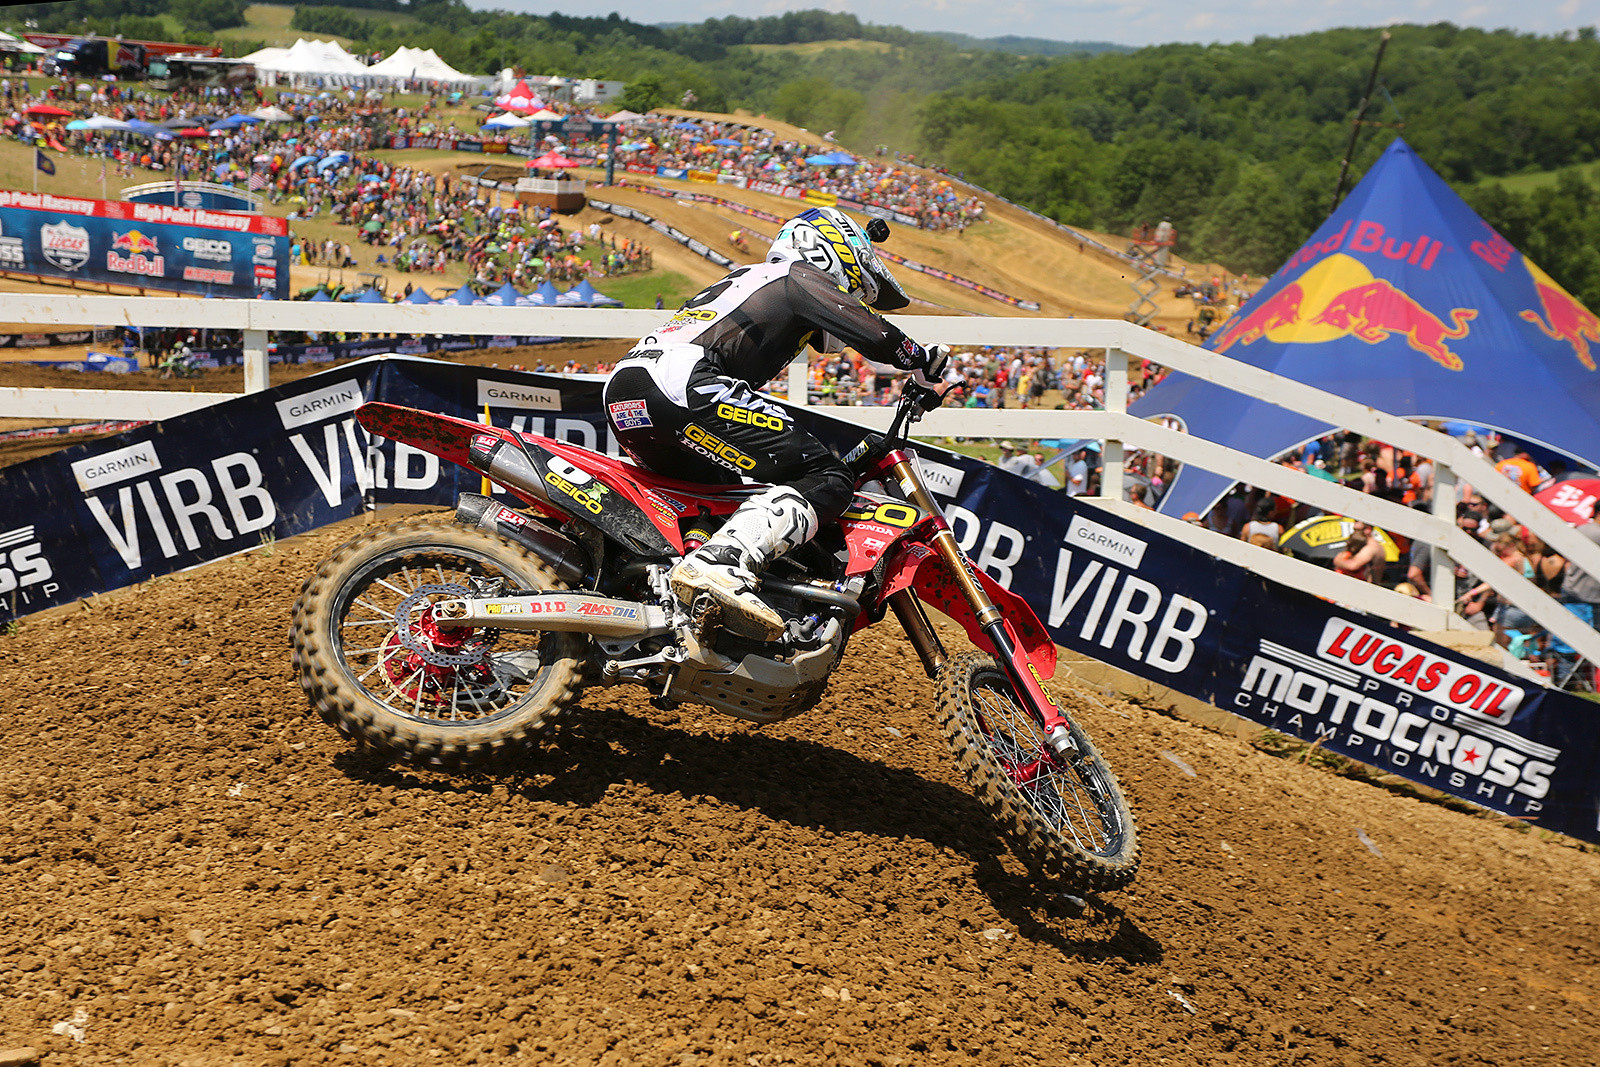 Jeremy Martin scored the holeshot in the first 250 moto, and led until just before halfway, when Zach Osborne got by.